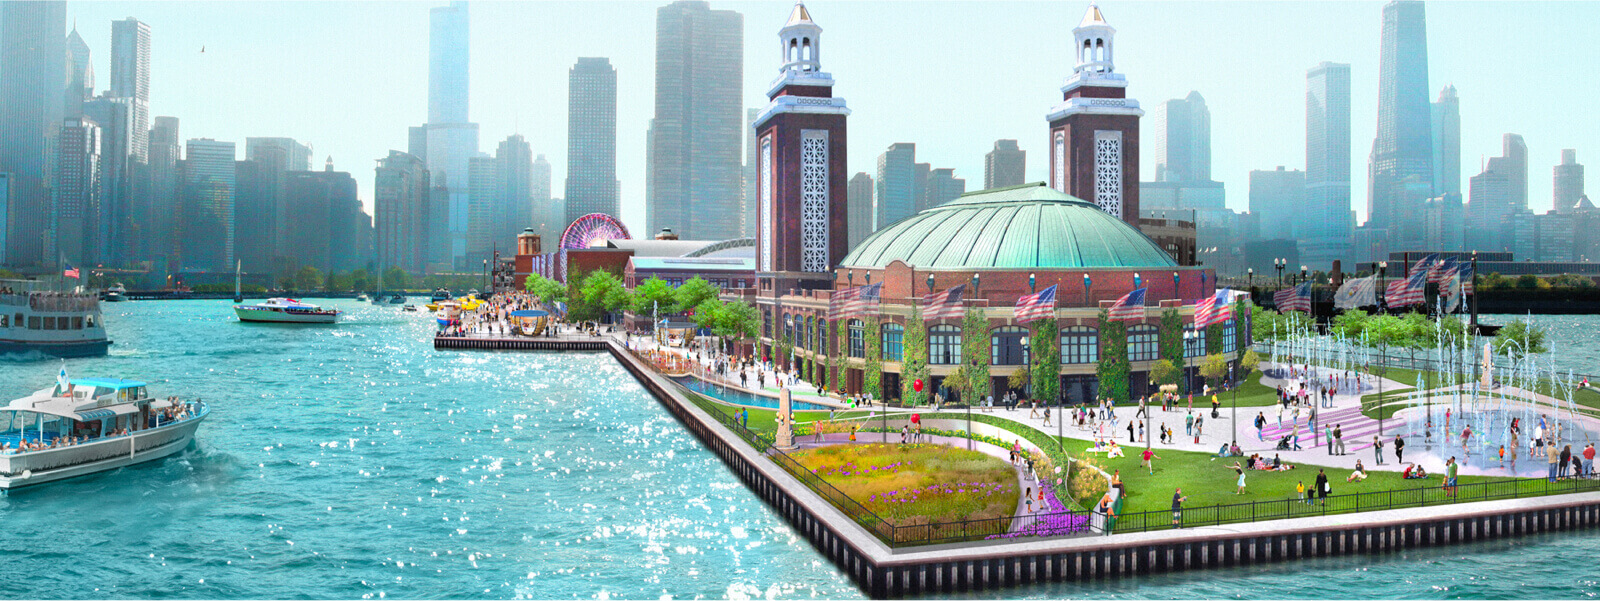 YachtLife's top Yachting Activities in Chicago - Chicago Landmarks